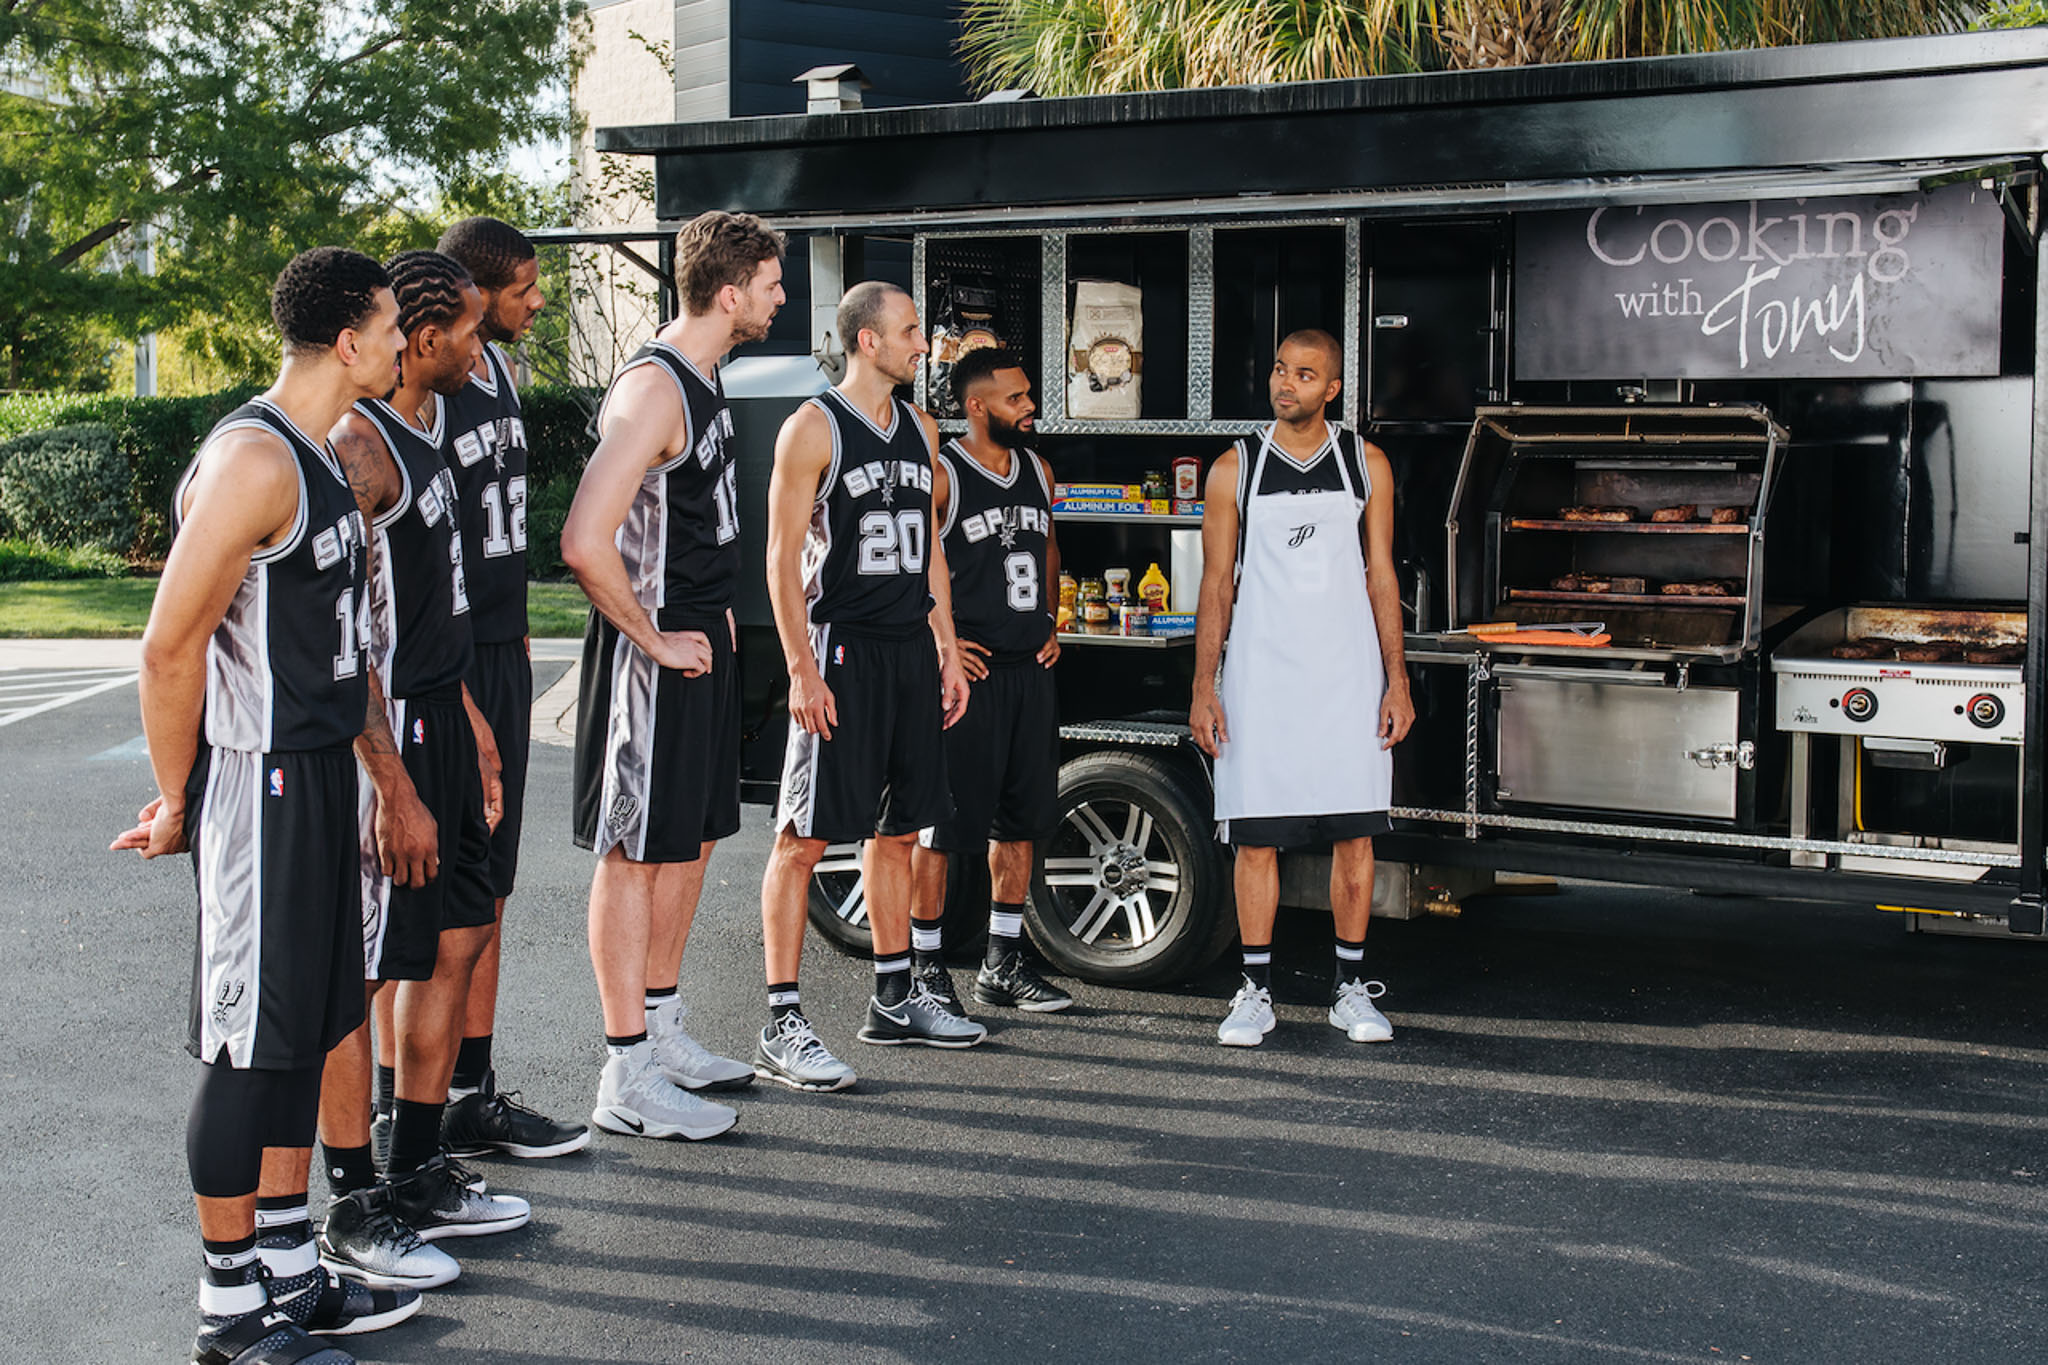 (From left) Spurs players Danny Green, Kawhi Leonard, LaMarcus Aldridge, Pau Gasol, Manu Ginobili, Patty Mills, and Tony Parker all in appearance during the shooting of the most recent H-E-B commercials.